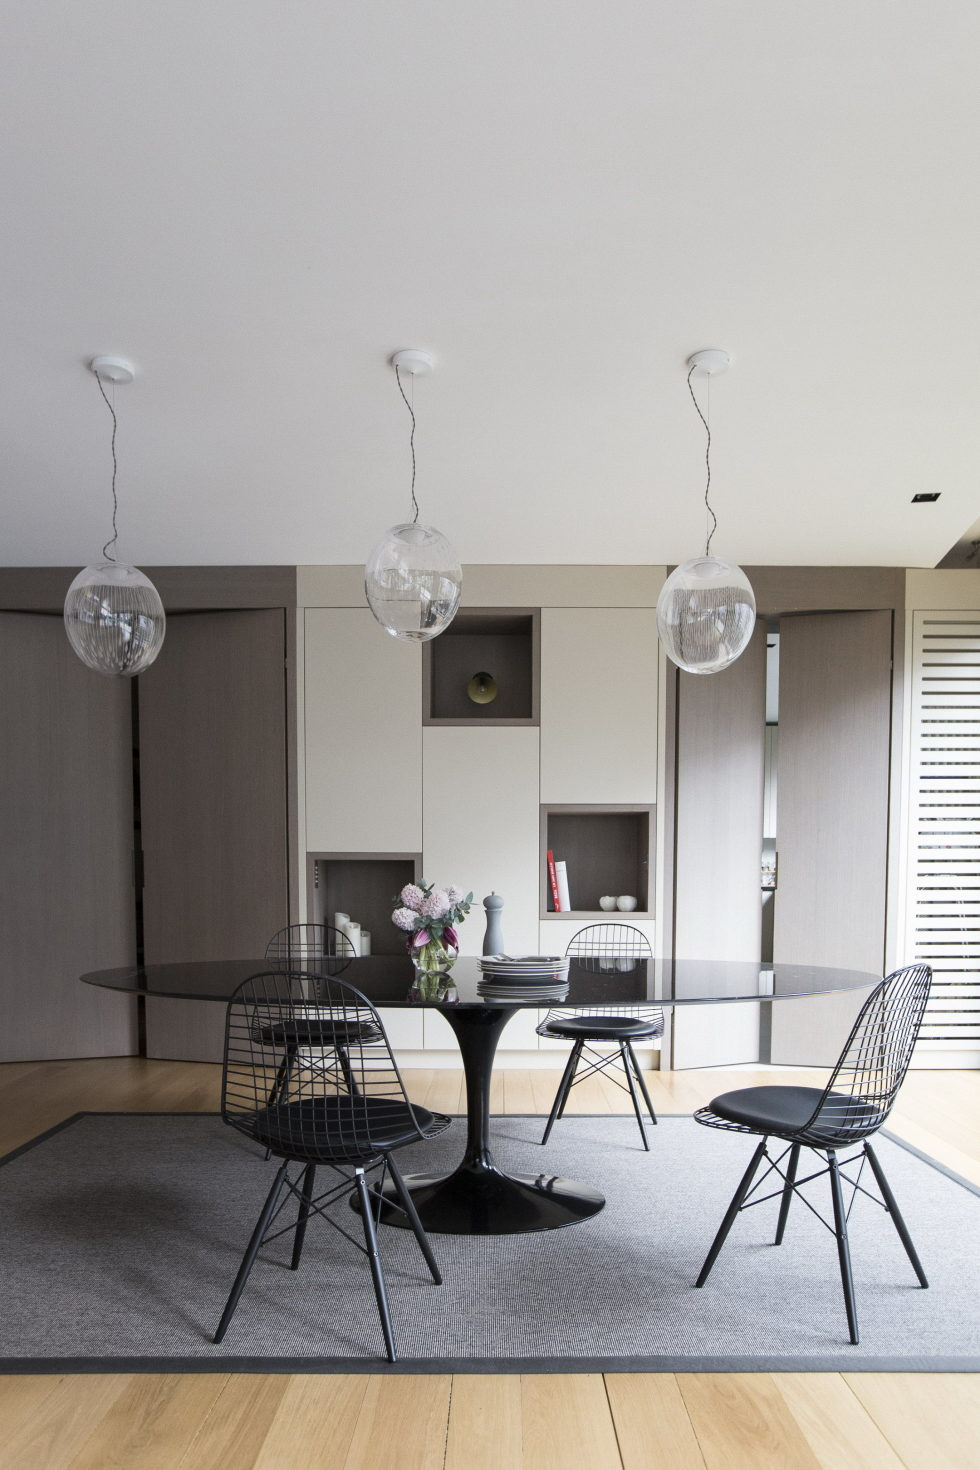 An apartment, also known as Victor Hugoin, in Paris by designer Camille Hermand 4